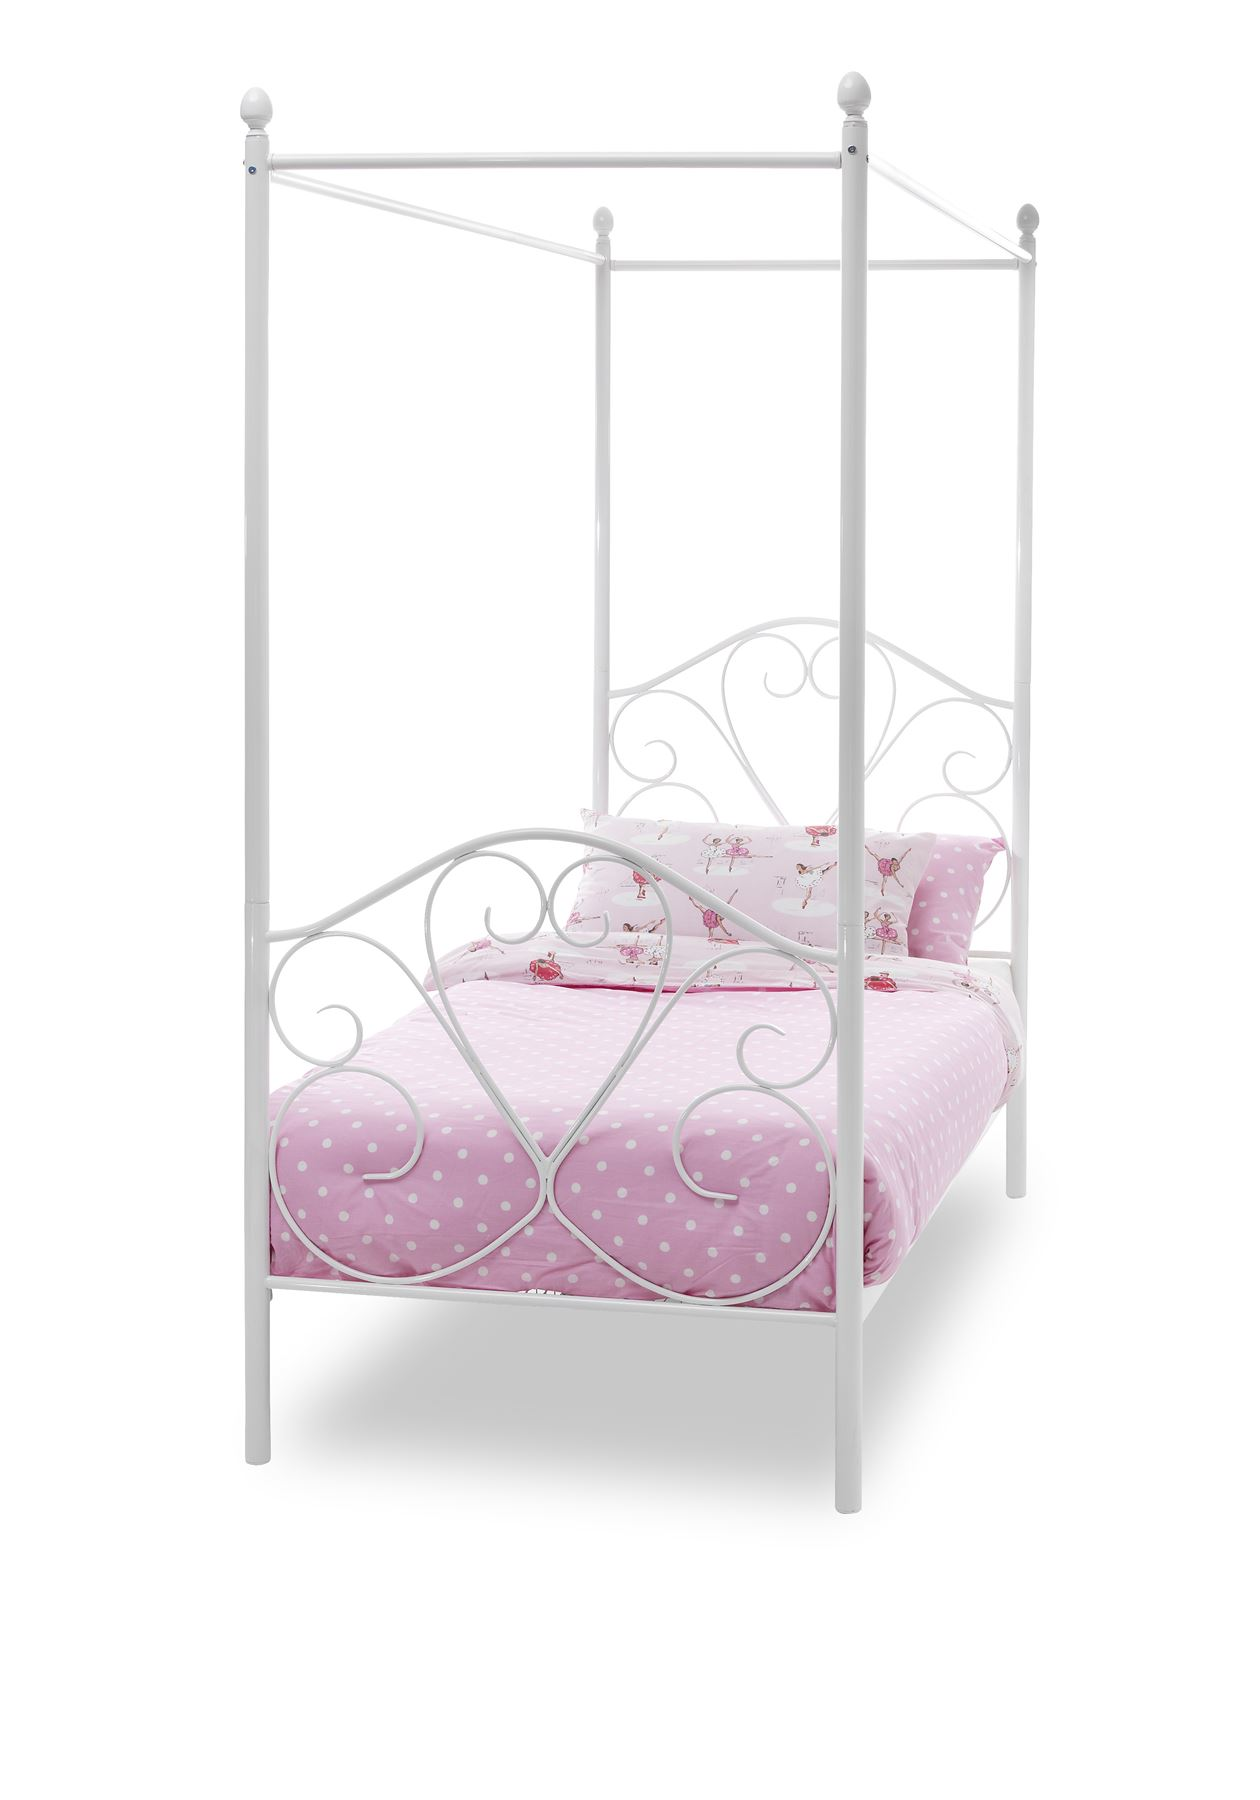 Single Four Poster Bed Details About Isabelle 3ft 90cm Metal Four Poster Post Bed Single White